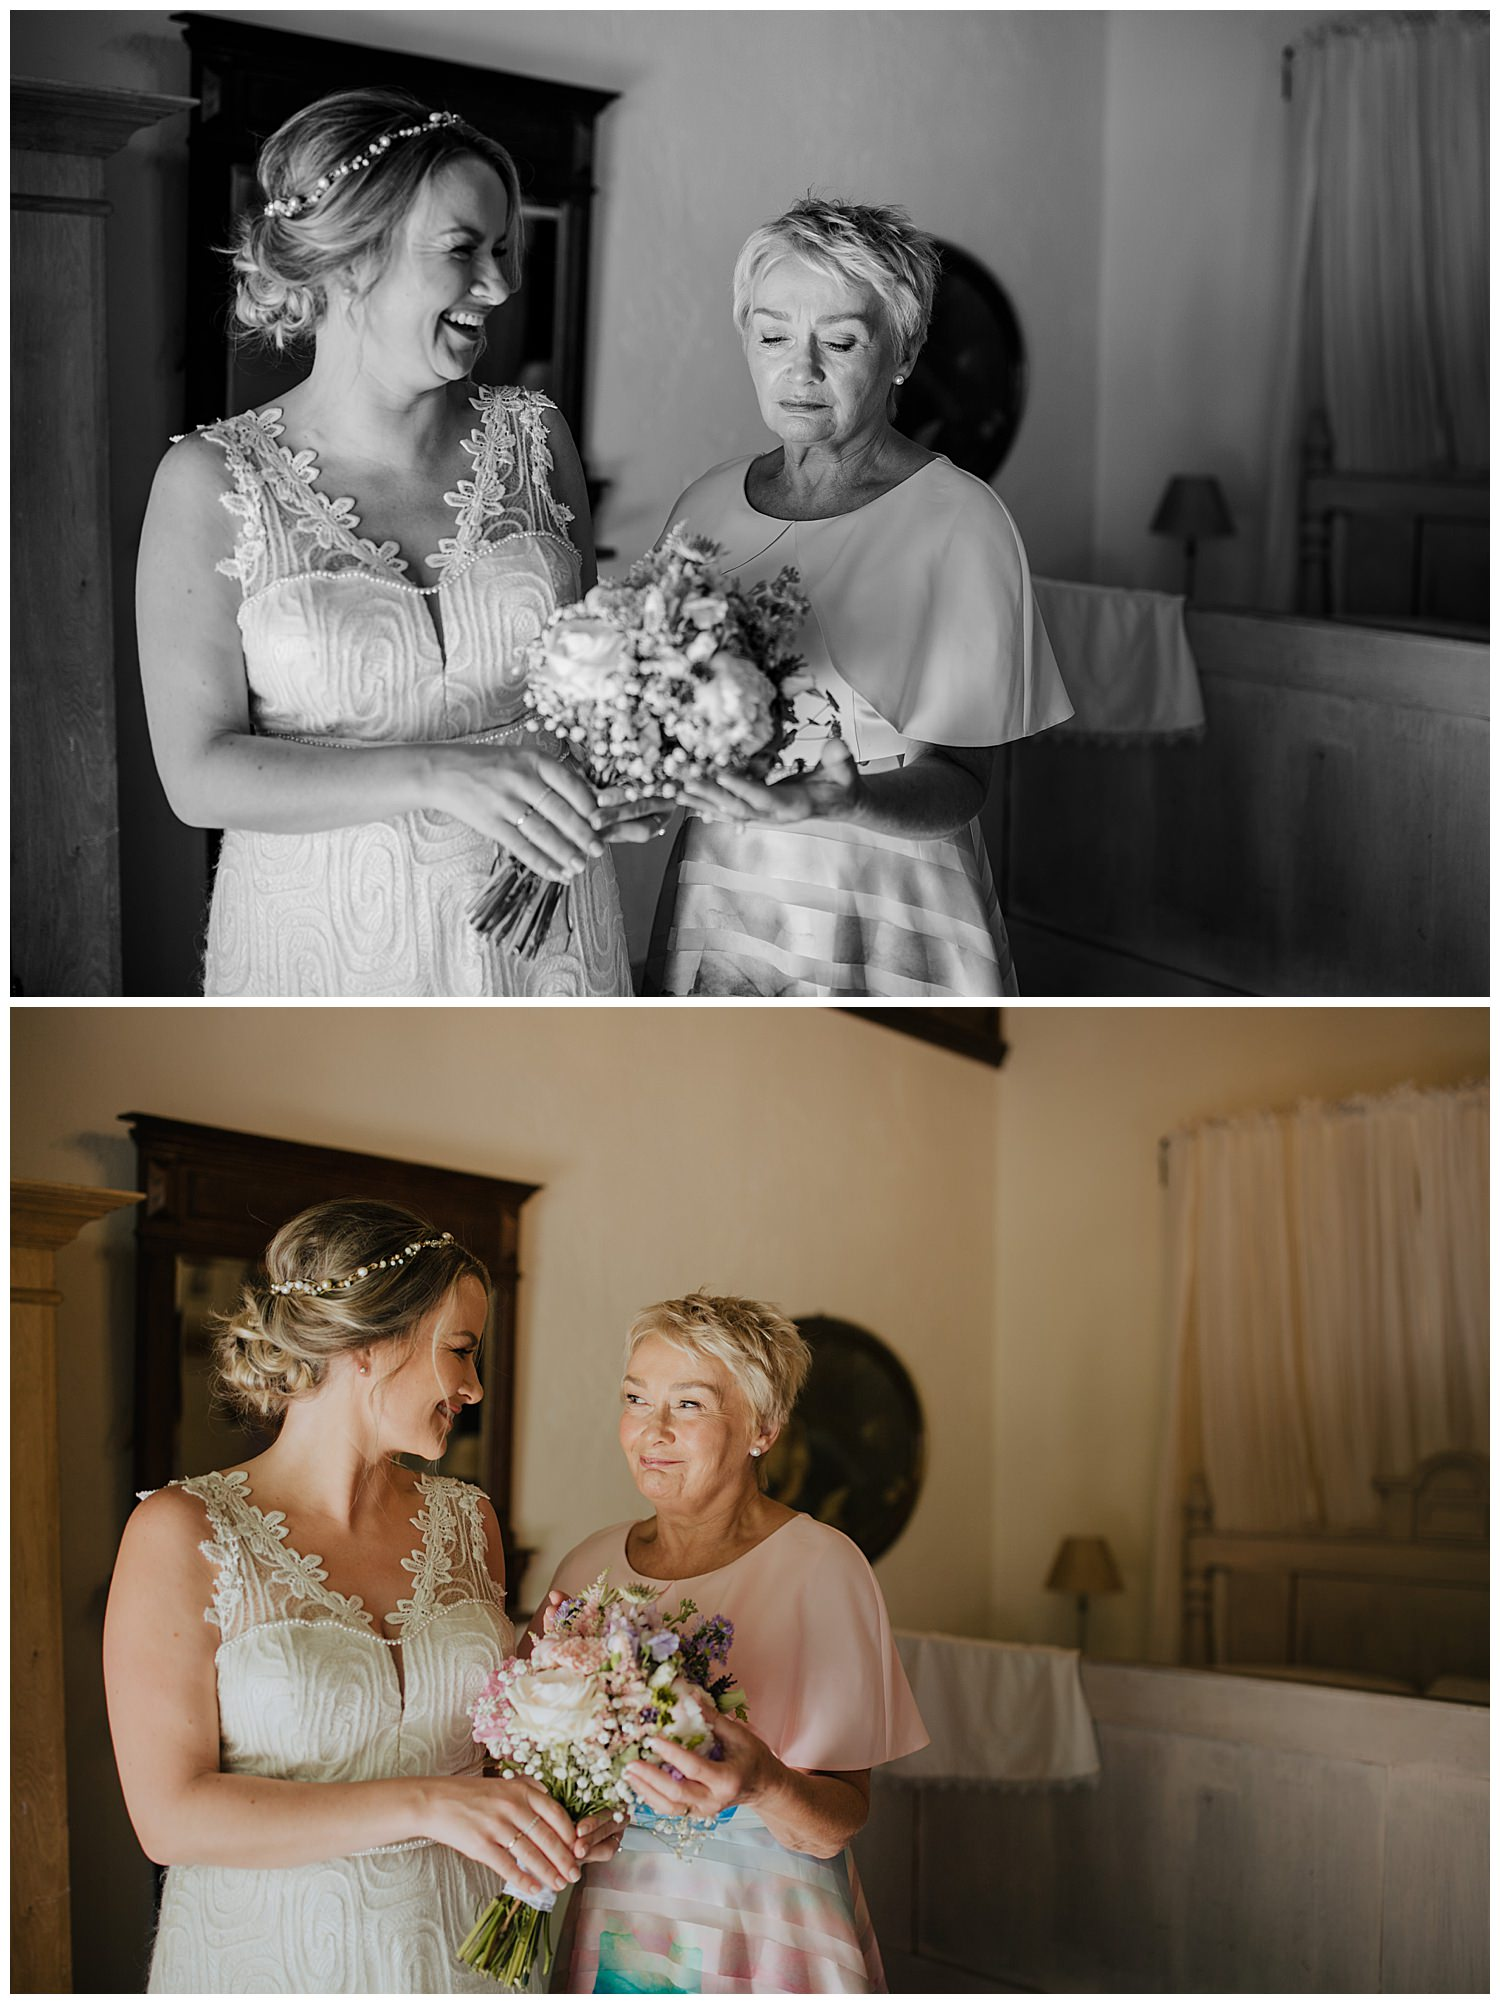 j&r_ballybeg_house_wedding_photographer_livia_figueiredo_173.jpg